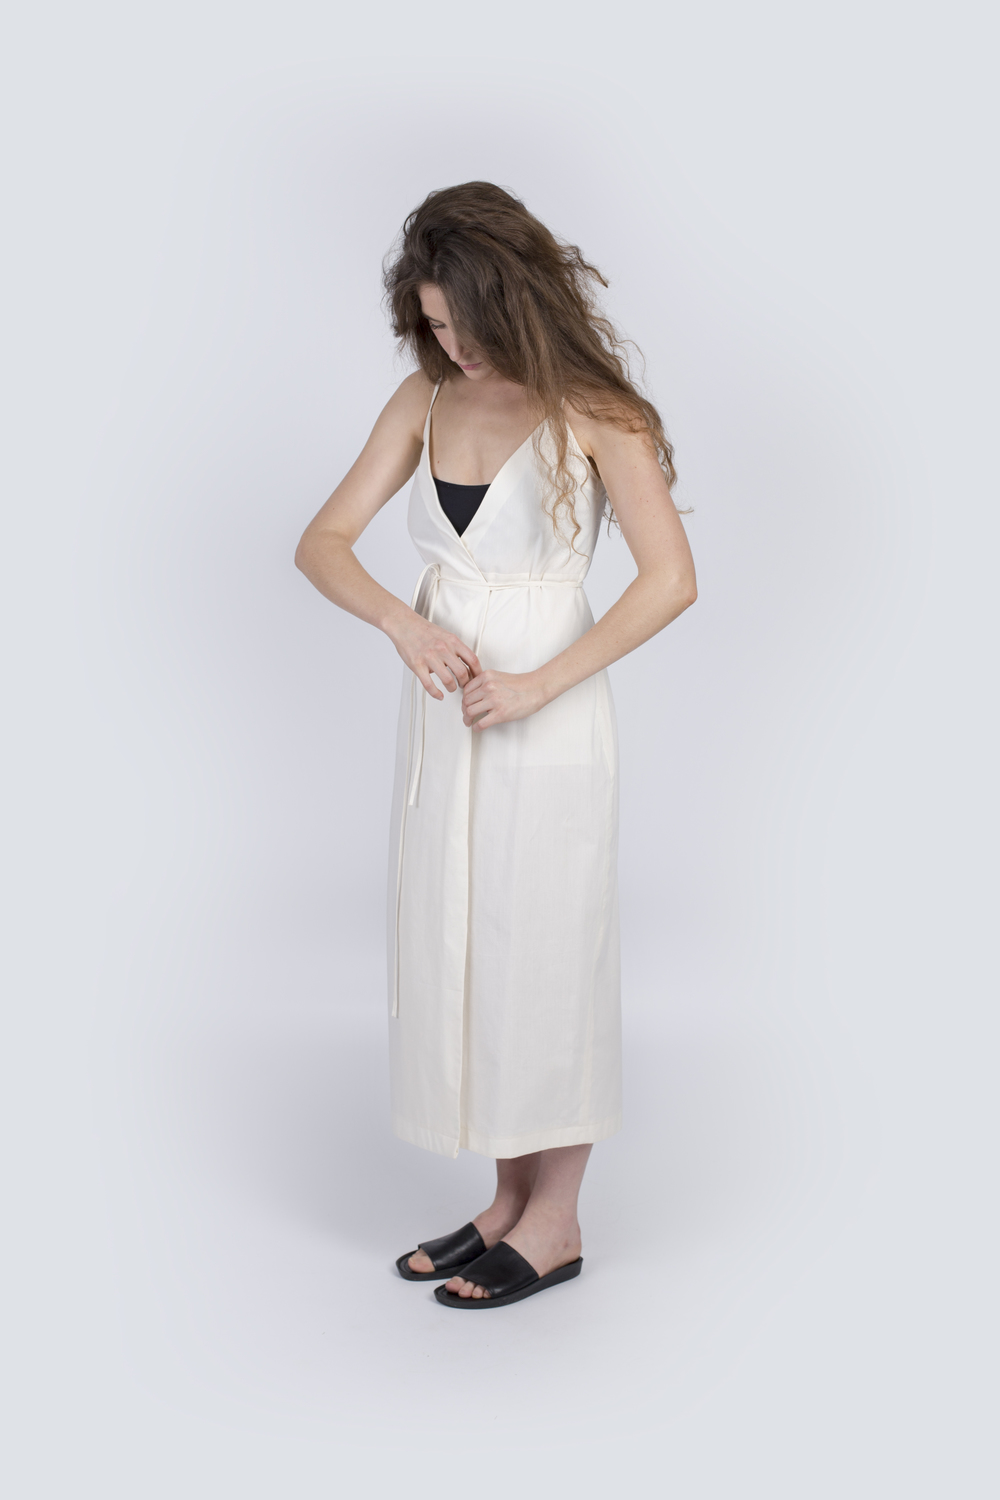 Minimal design in sustainable fabrics